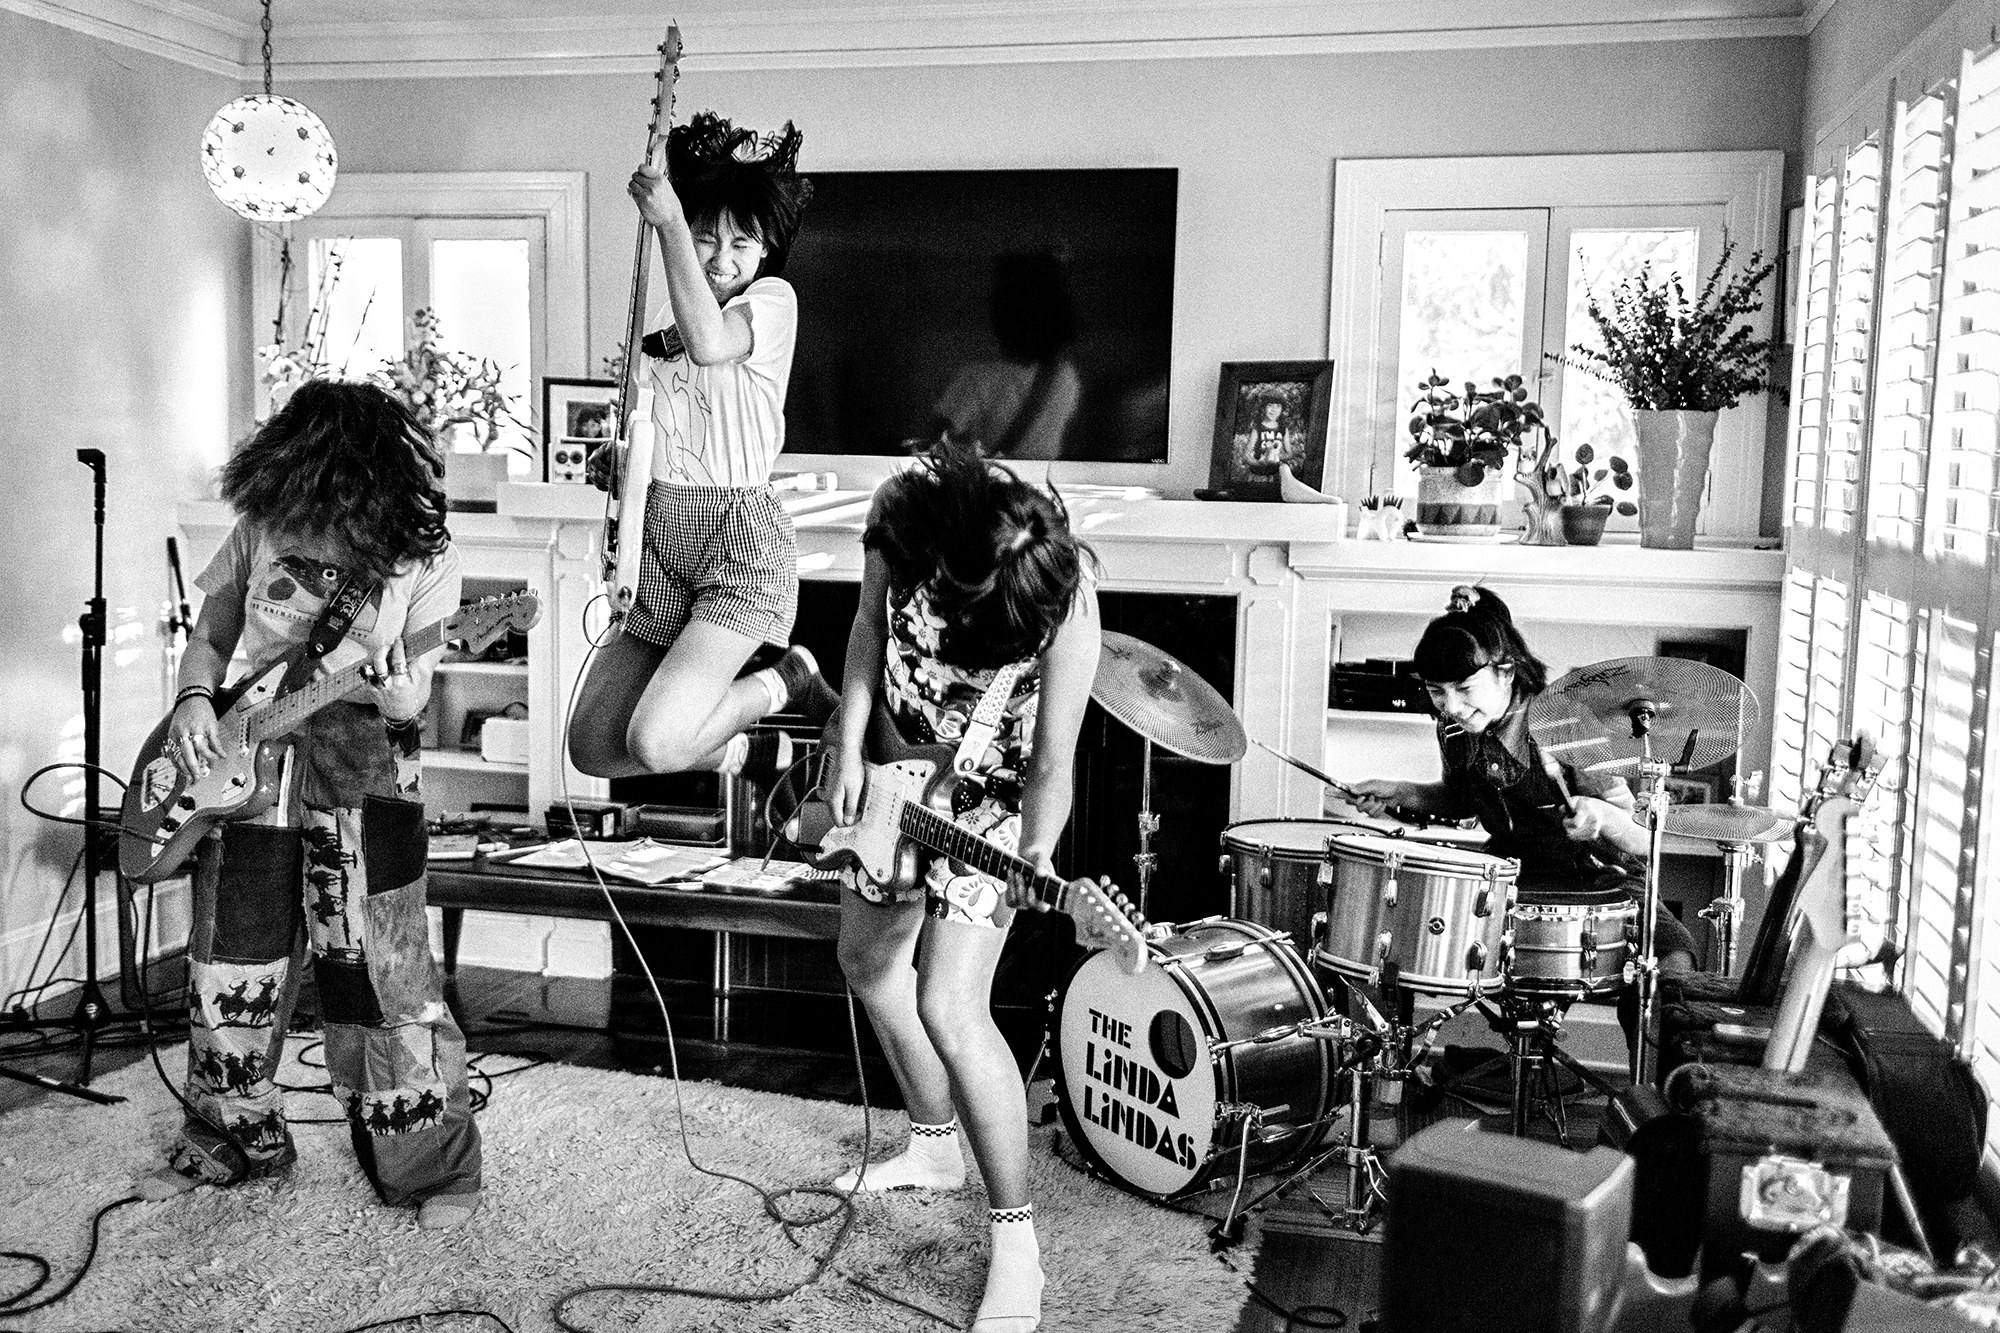 Four young girls jam out in a suburban living room, two playing guitar, one playing guitar and jumping into the air, and one on drums